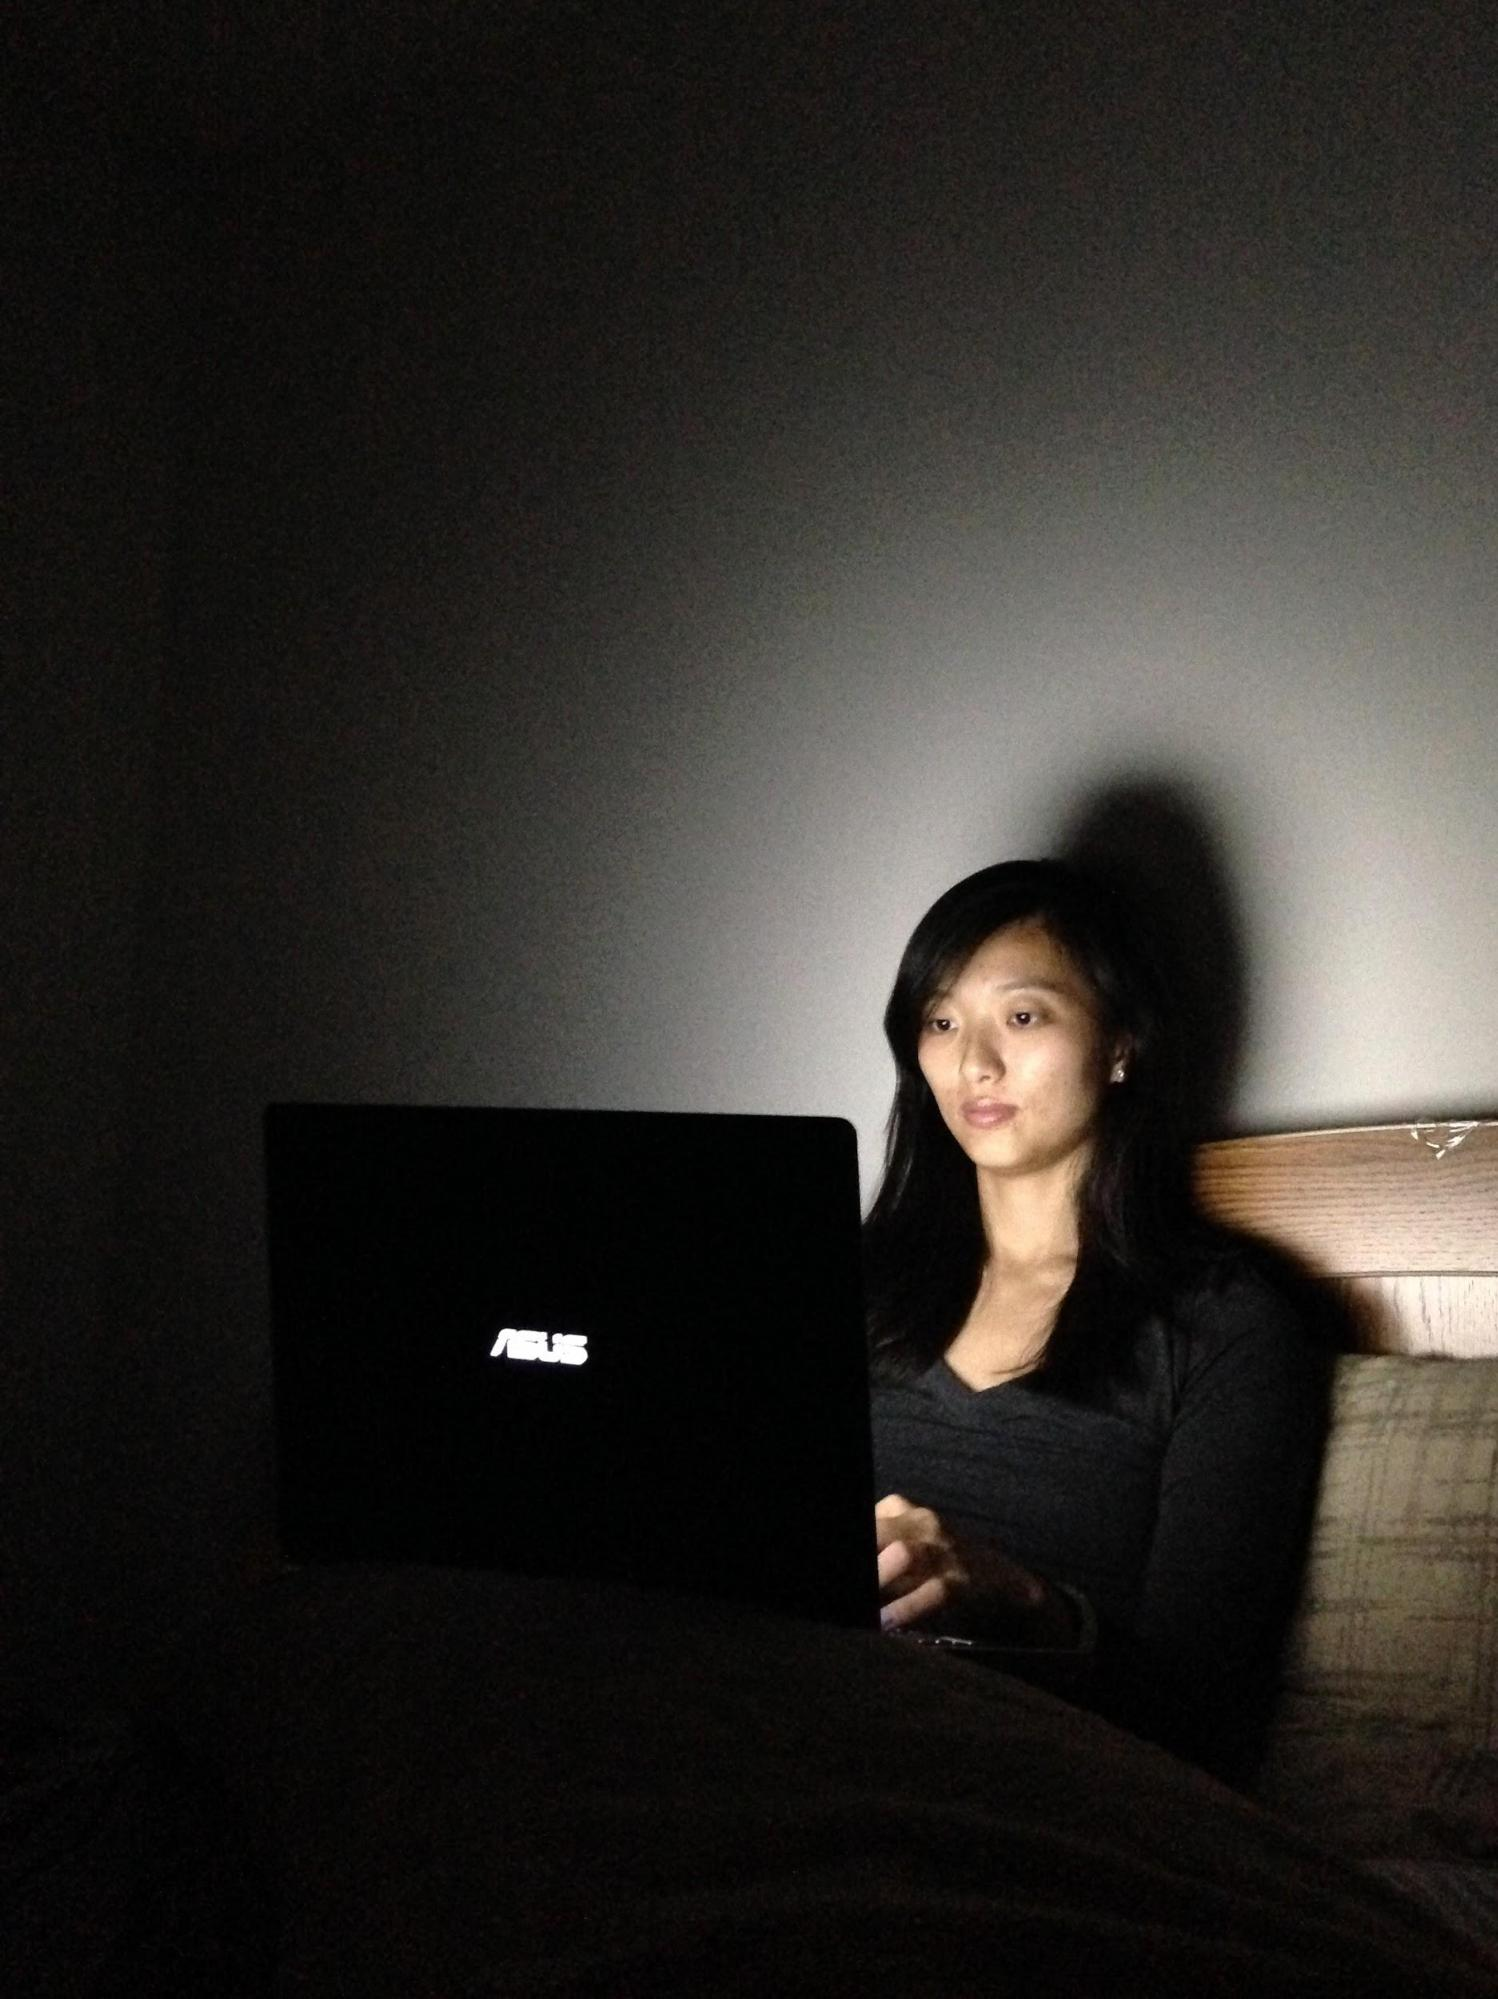 talent using laptop in the dark